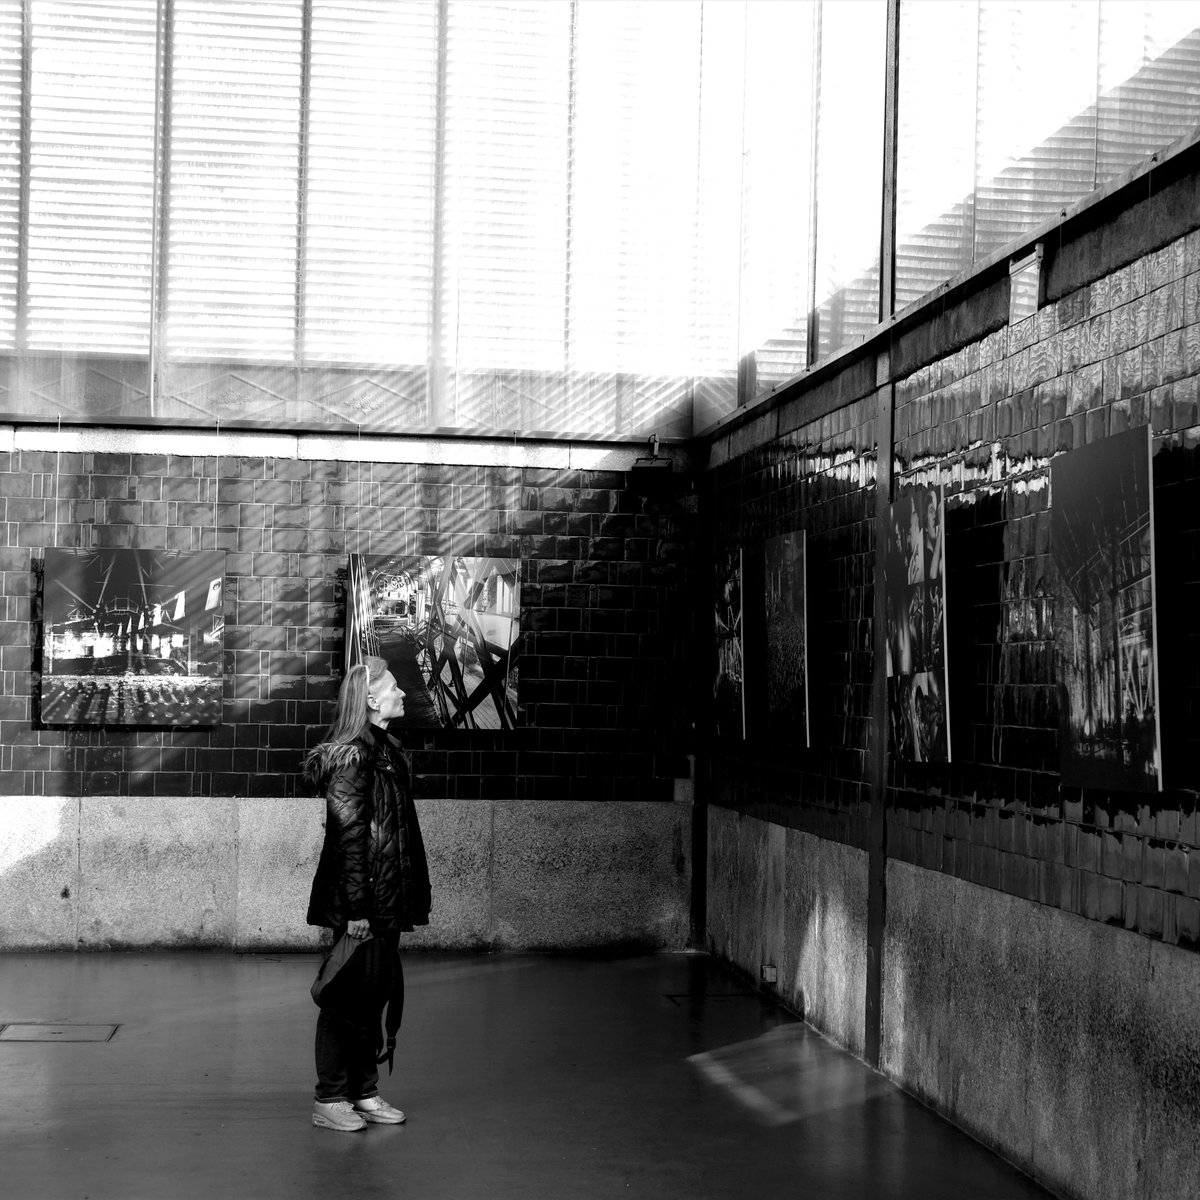 Women at an Exhibition - Porto 2020 #streetphotography #streetphoto #street #streets_storytelling #streetlife #througstreets #streetphotographer #blackandwhitephotography #blackandwhitephoto #bnwphotography #bnw #urbanphotography #urban pic.twitter.com/zmzw9bleCK